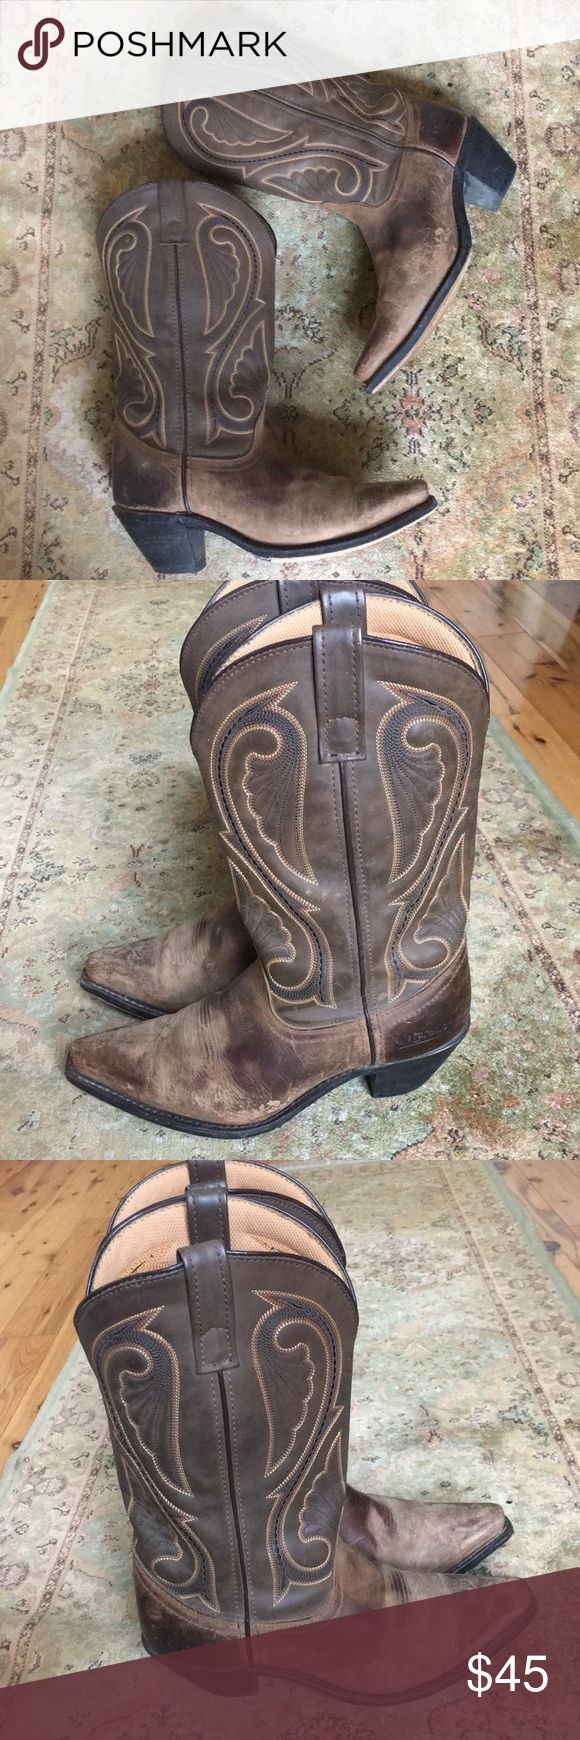 """Laredo cowgirl boots NOT INCLUDED IN 50% OF SALE...MAKE AN OFFER PLEASE!  Cowgirl boots by Laredo in good used condition. Scuffs and wear give them a nice distressed look. Leather, uppers and soles are in good condition. Nice boot to dress up and go to town in▫️Pointed toe▫️Pull tabs▫️2.5"""" heel▫️Leather and man-made materials▫️Retail price written on bottom of one boot Laredo Shoes Heeled Boots"""